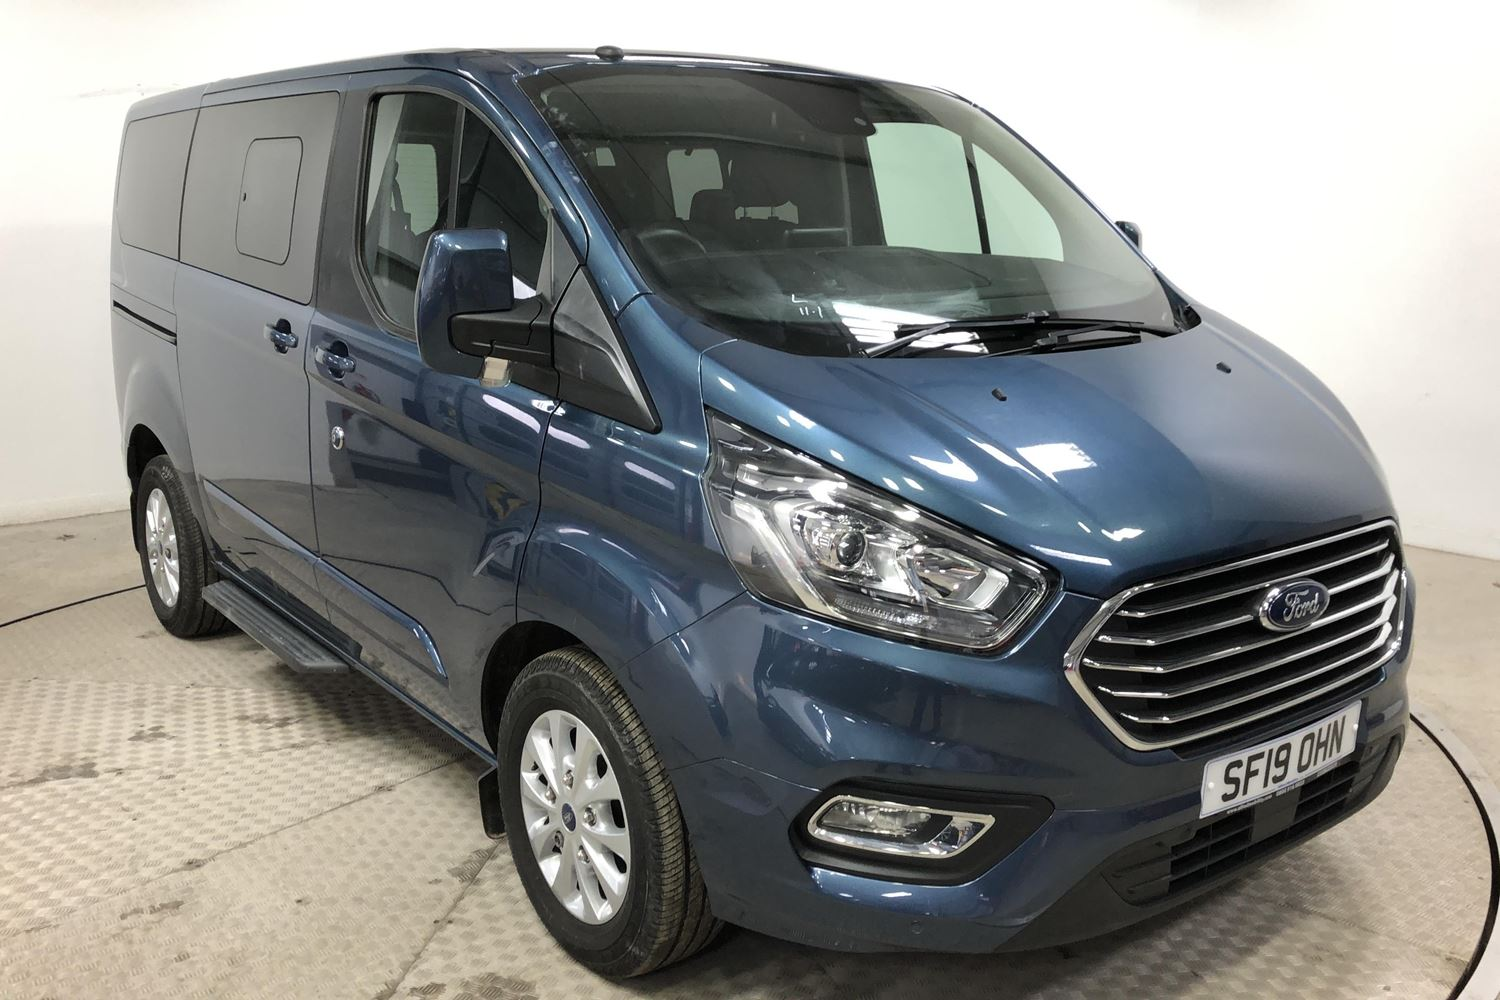 Nearly New WAV Ford Tourneo Custom Titanium 2.0 ltr Titanium L1 automatic 5 seats